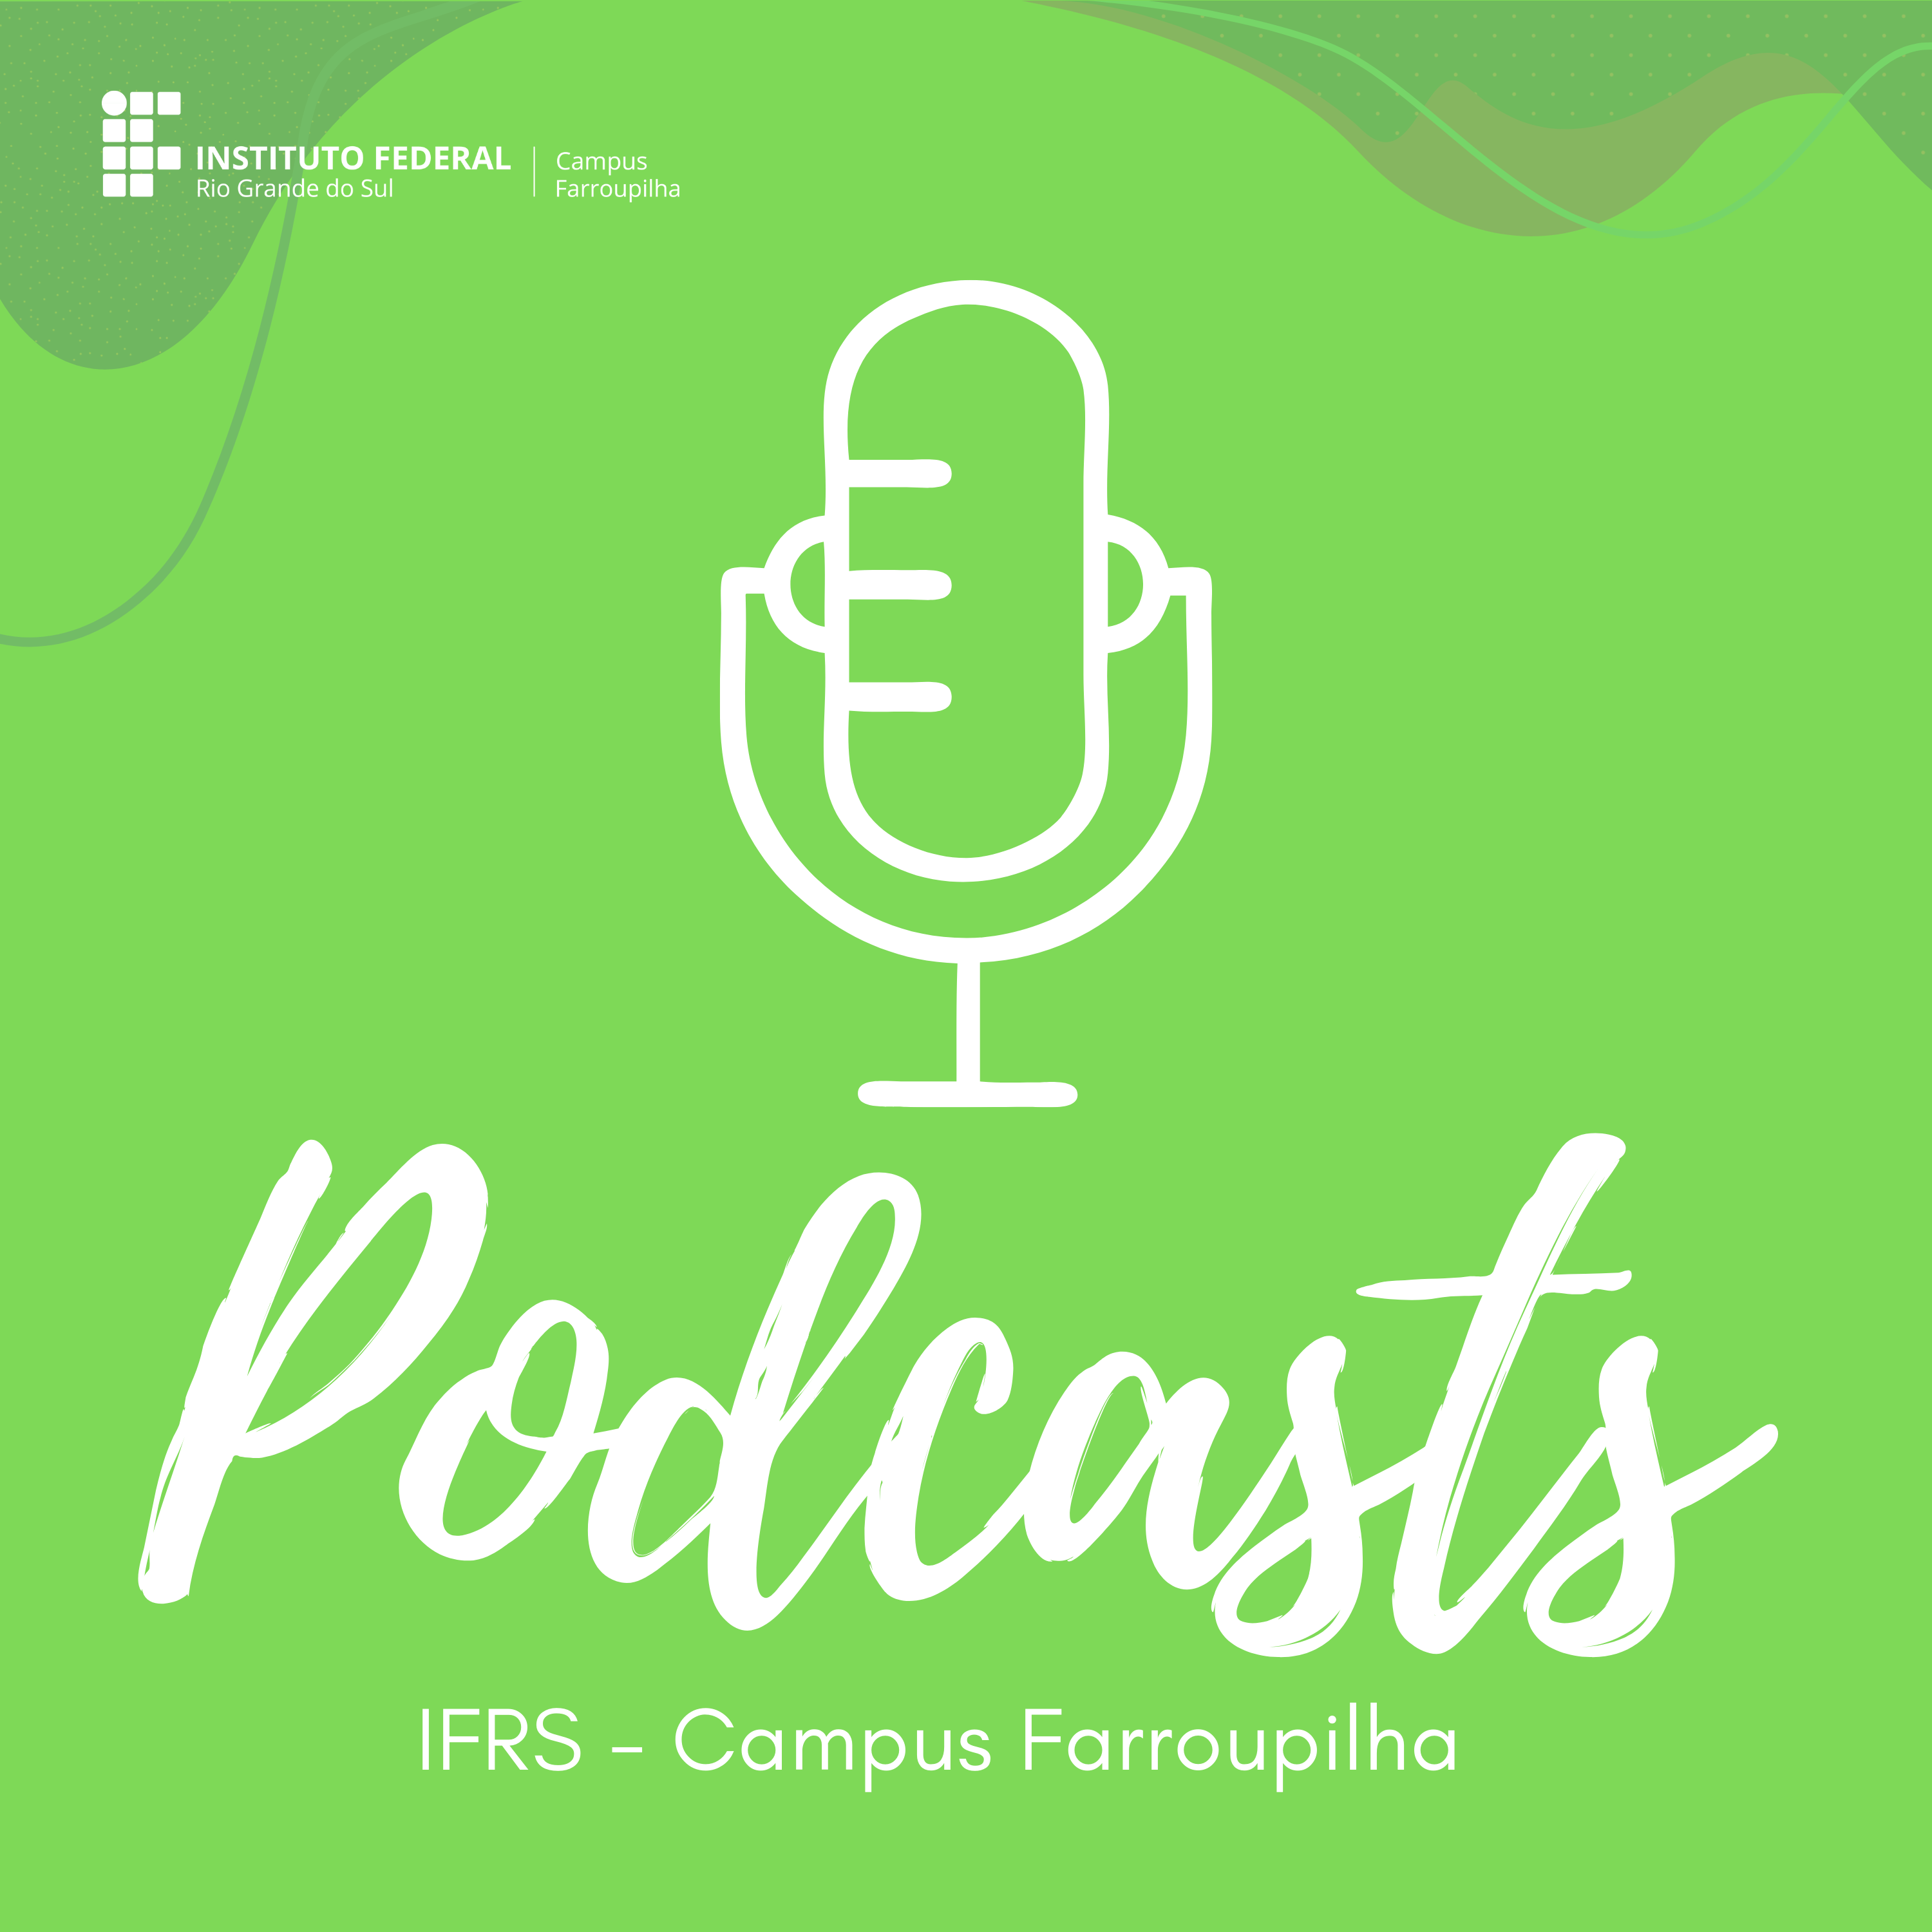 Podcasts do IFRS - Campus Farroupilha